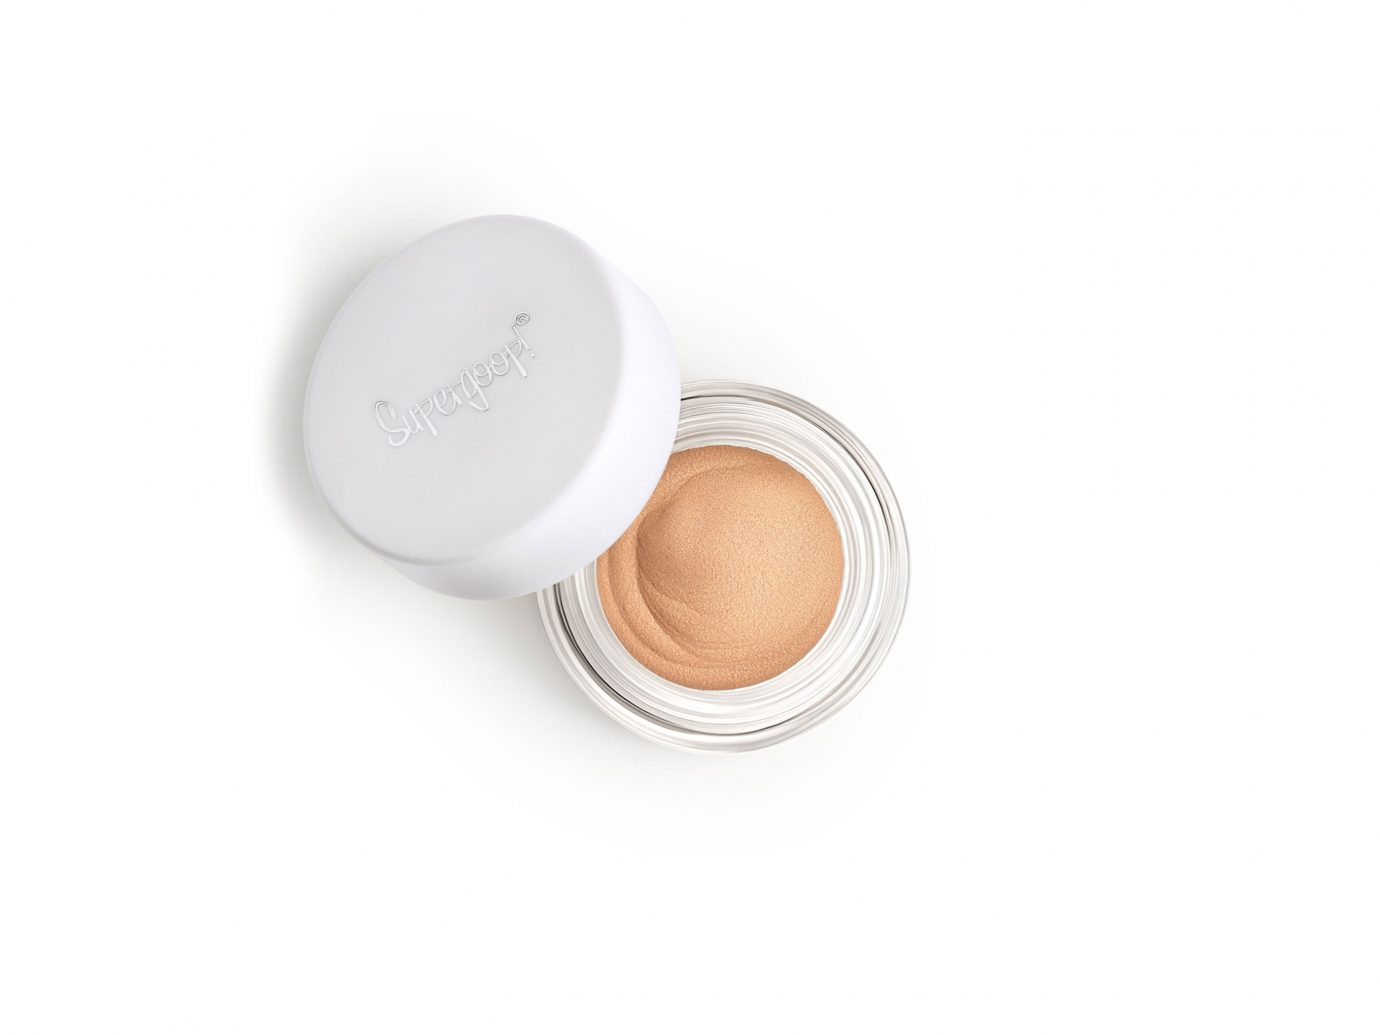 Supergoop! Shimmershade Illuminating Cream Eyeshadow